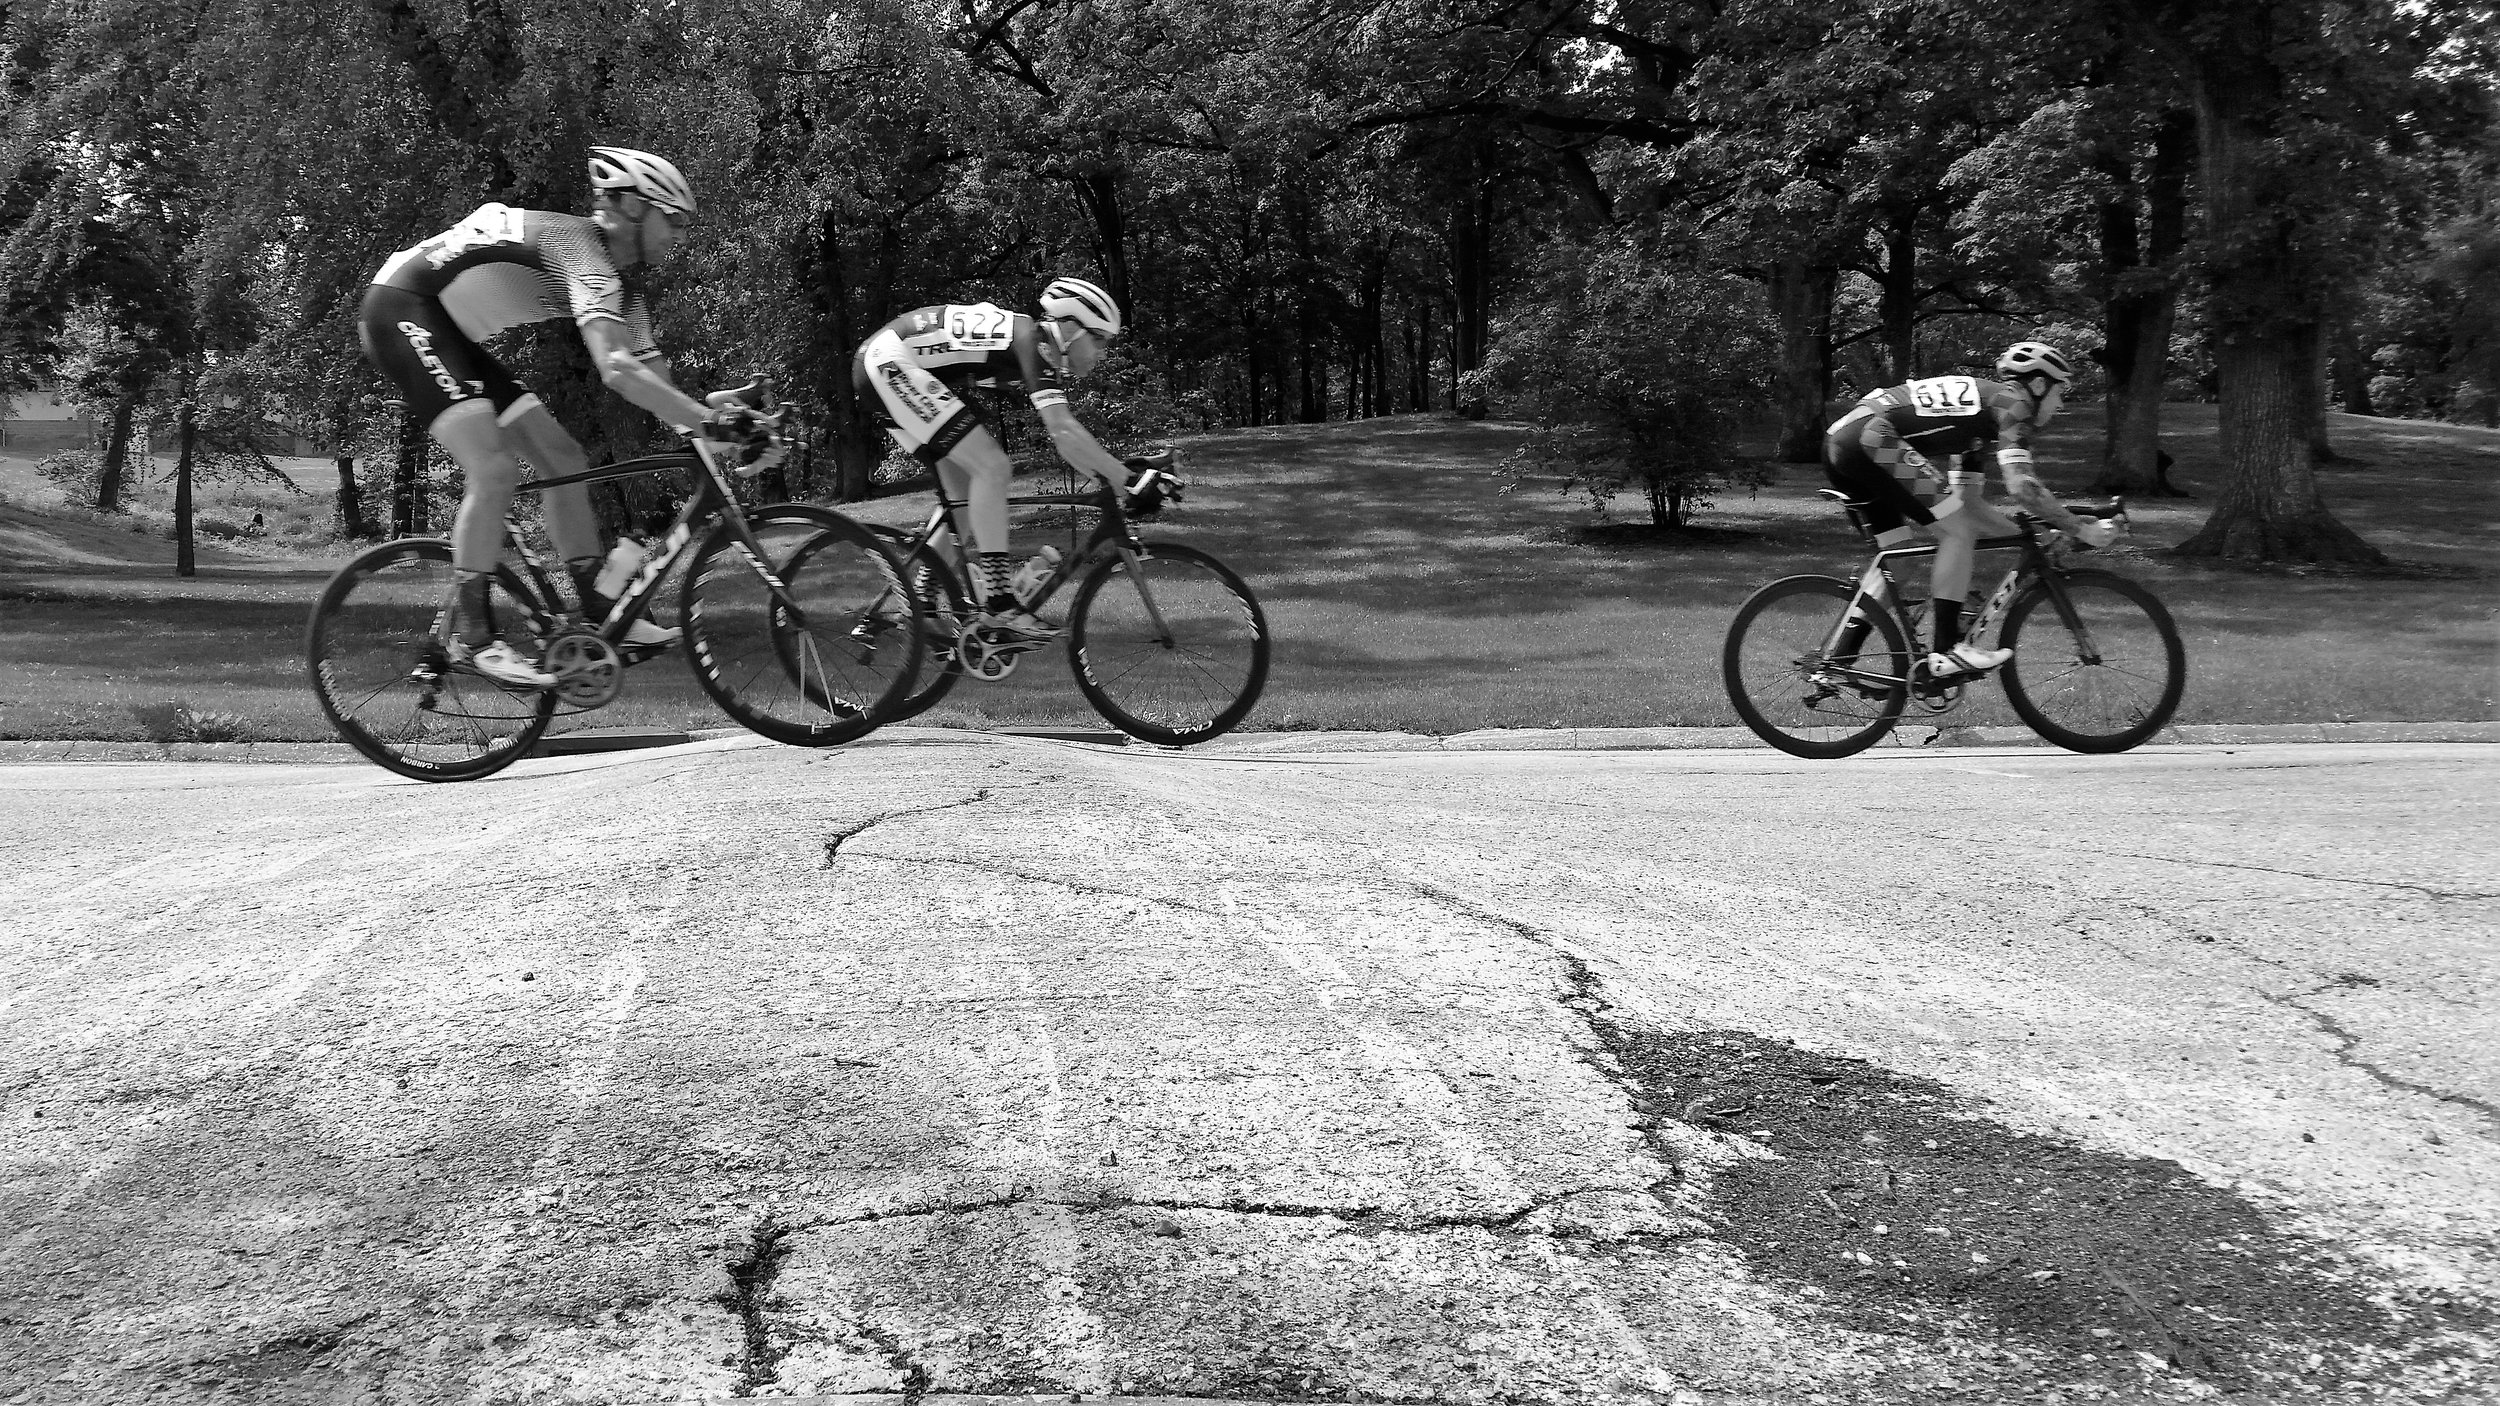 Black and White Three Riders at Speed Bump_enhanced cropped_26 May 2019_20190526_113932.jpg